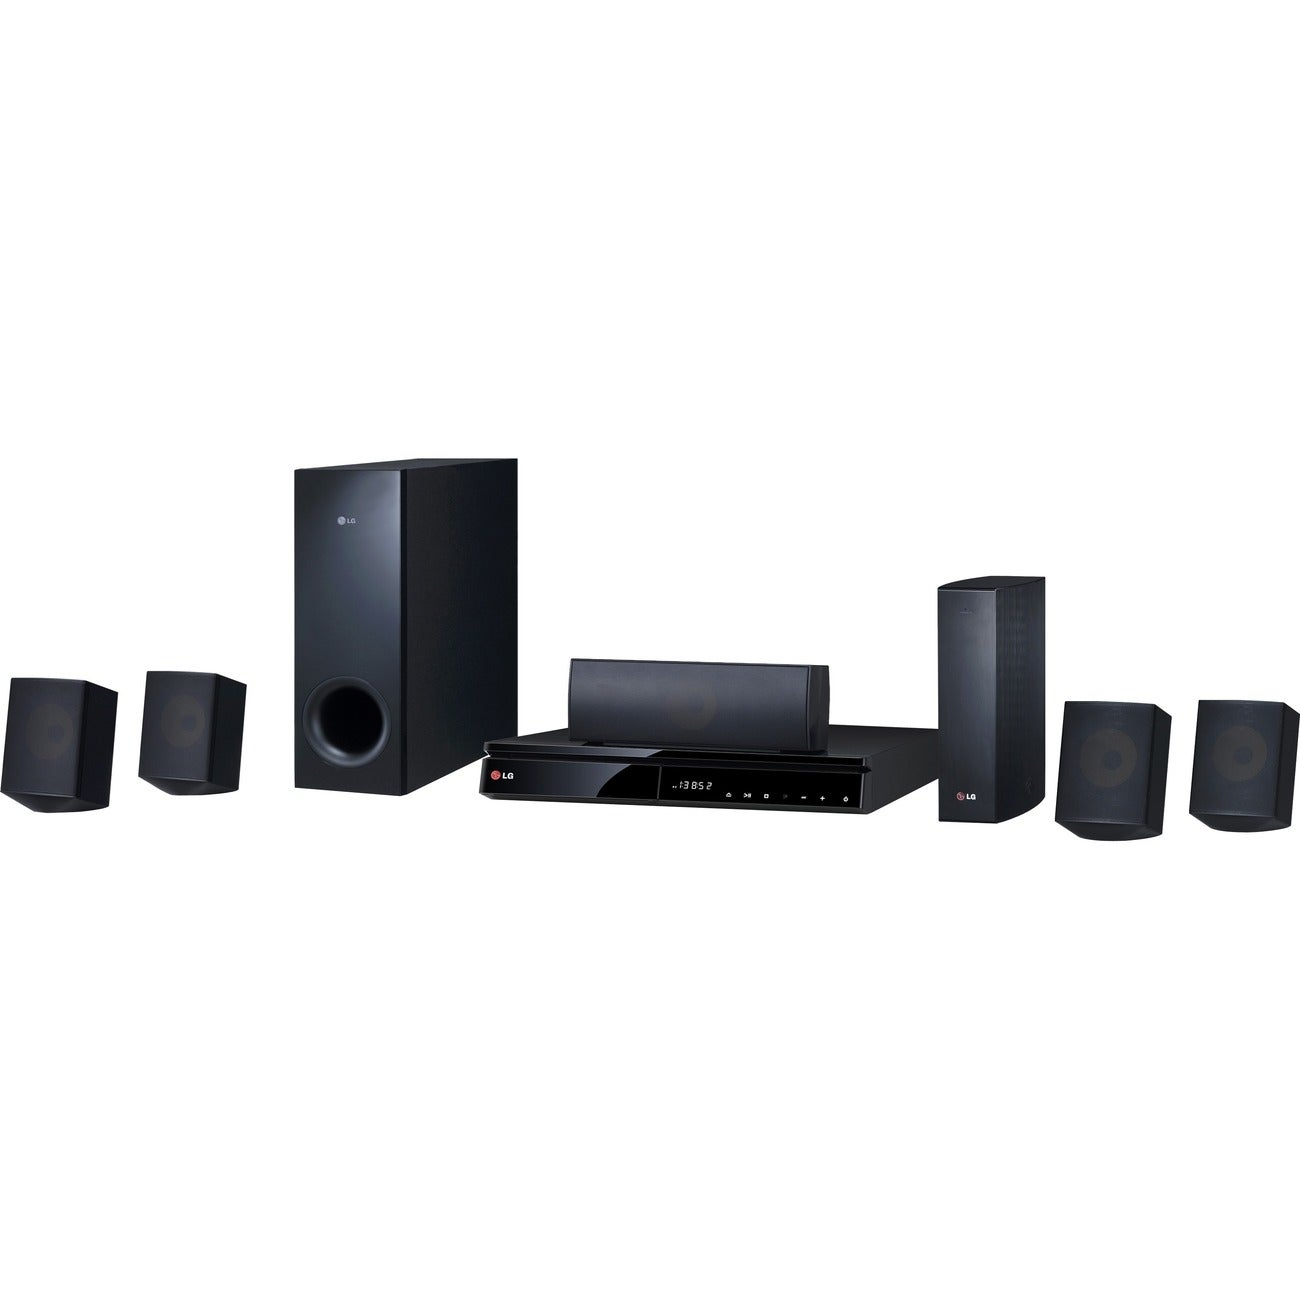 LG BH6830SW 1000W 5.1ch 3D Smart Home Theater System with Wireless Speakers